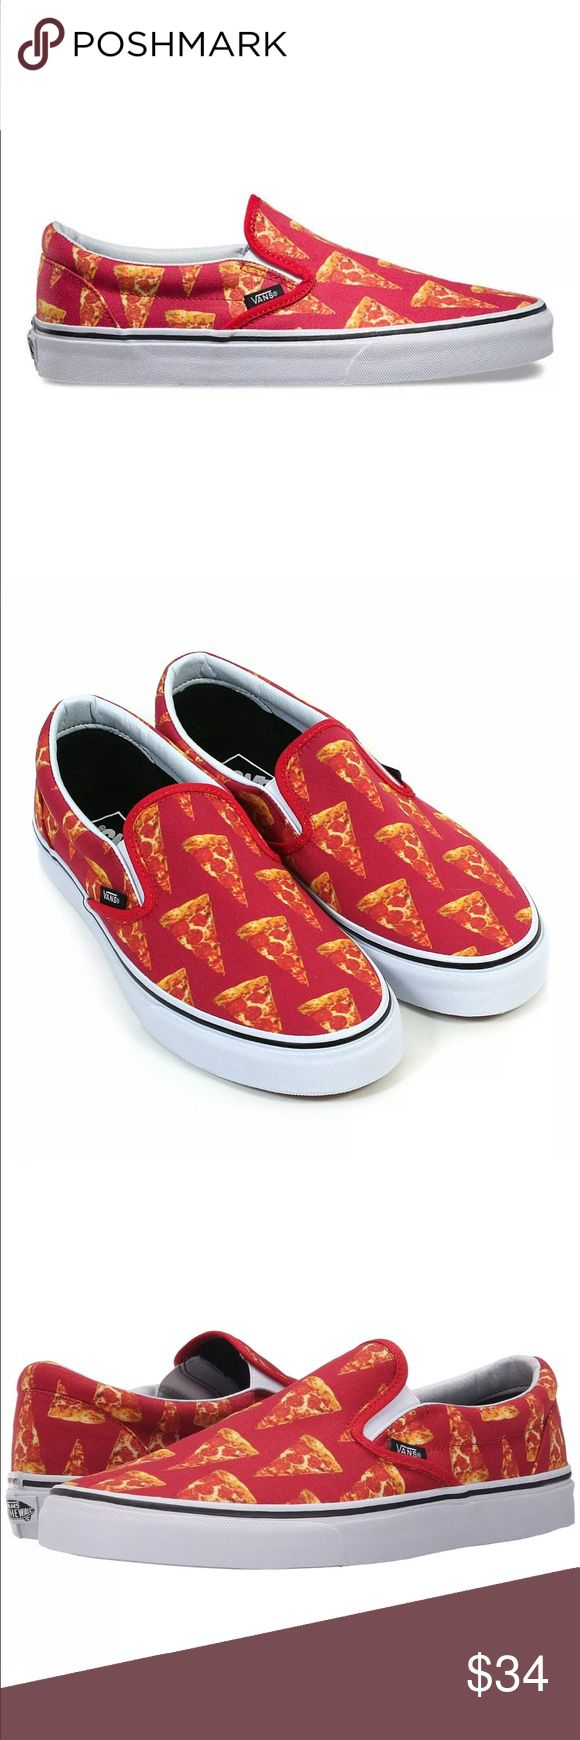 Vans slip on's late night pizza! Men's size 10 new Brand new size 10 men's vans slip on x late night pizza edition Vans Shoes Loafers & Slip-Ons